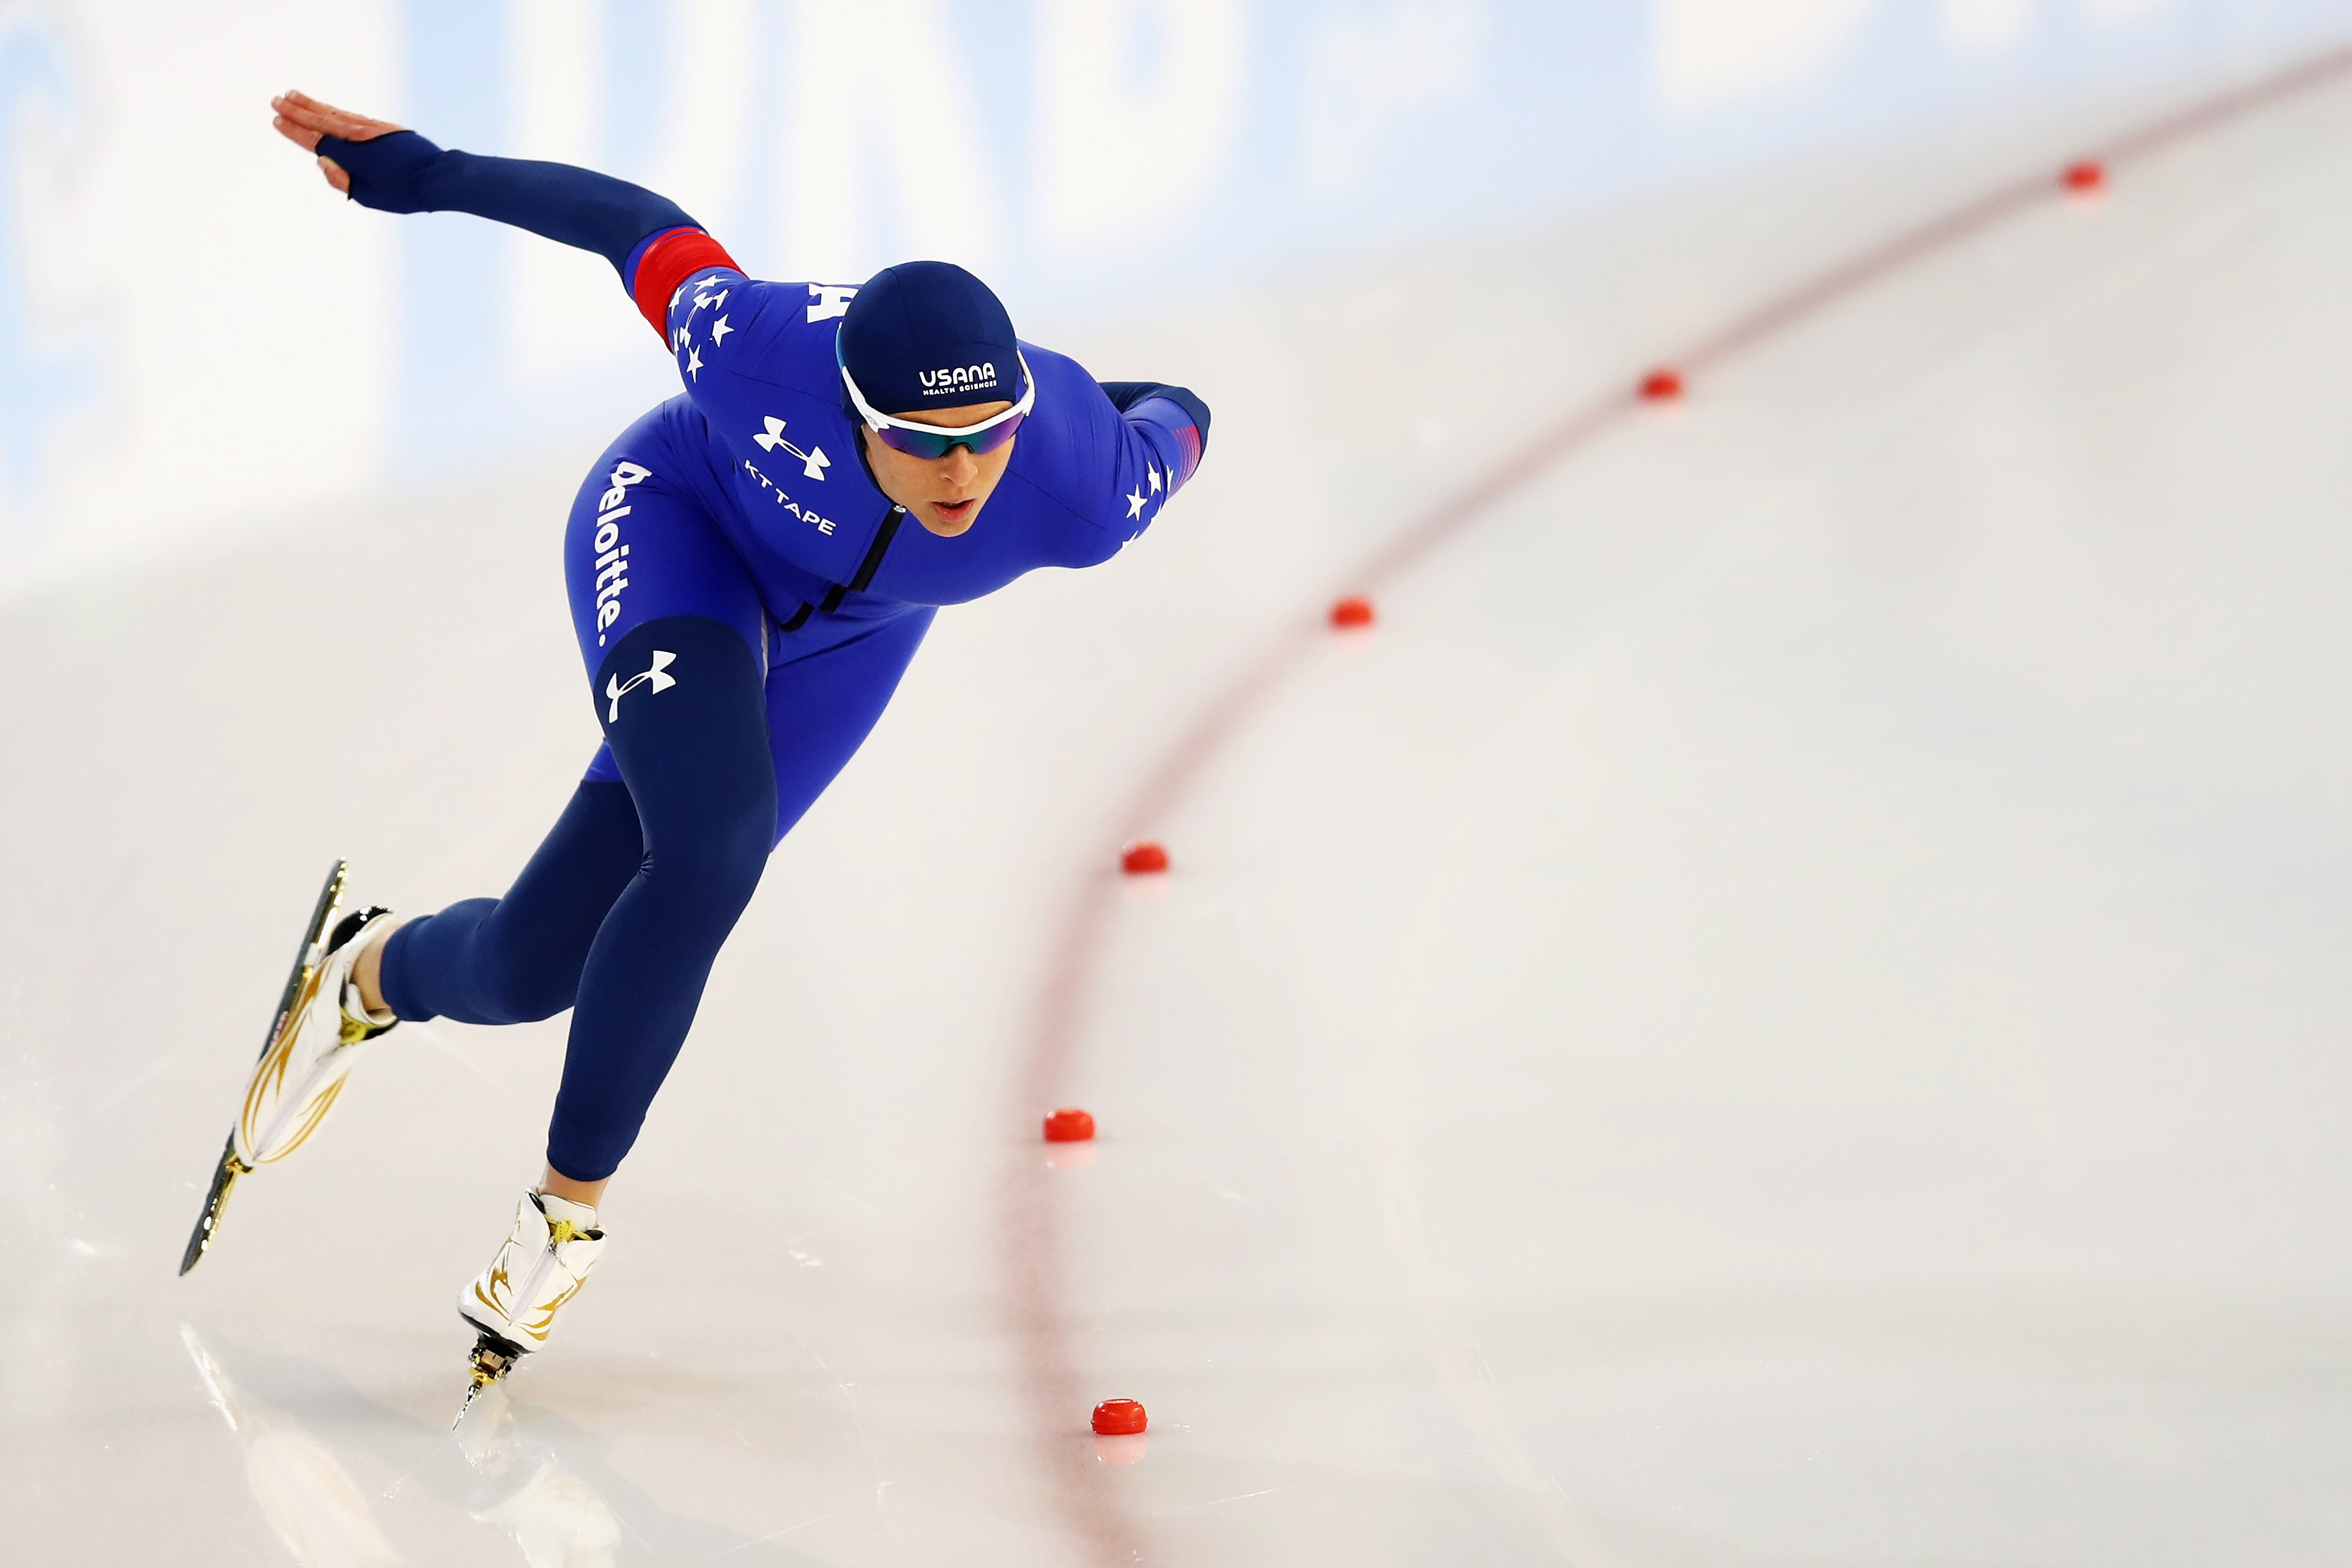 Brittany Bowe of the USA competes in the Women 500m on day 1 of the Speed Skating ISU World Cup on December 9, 2016 in Heerenveen, Netherlands. Dean Mouhtaropoulos—Getty Images.